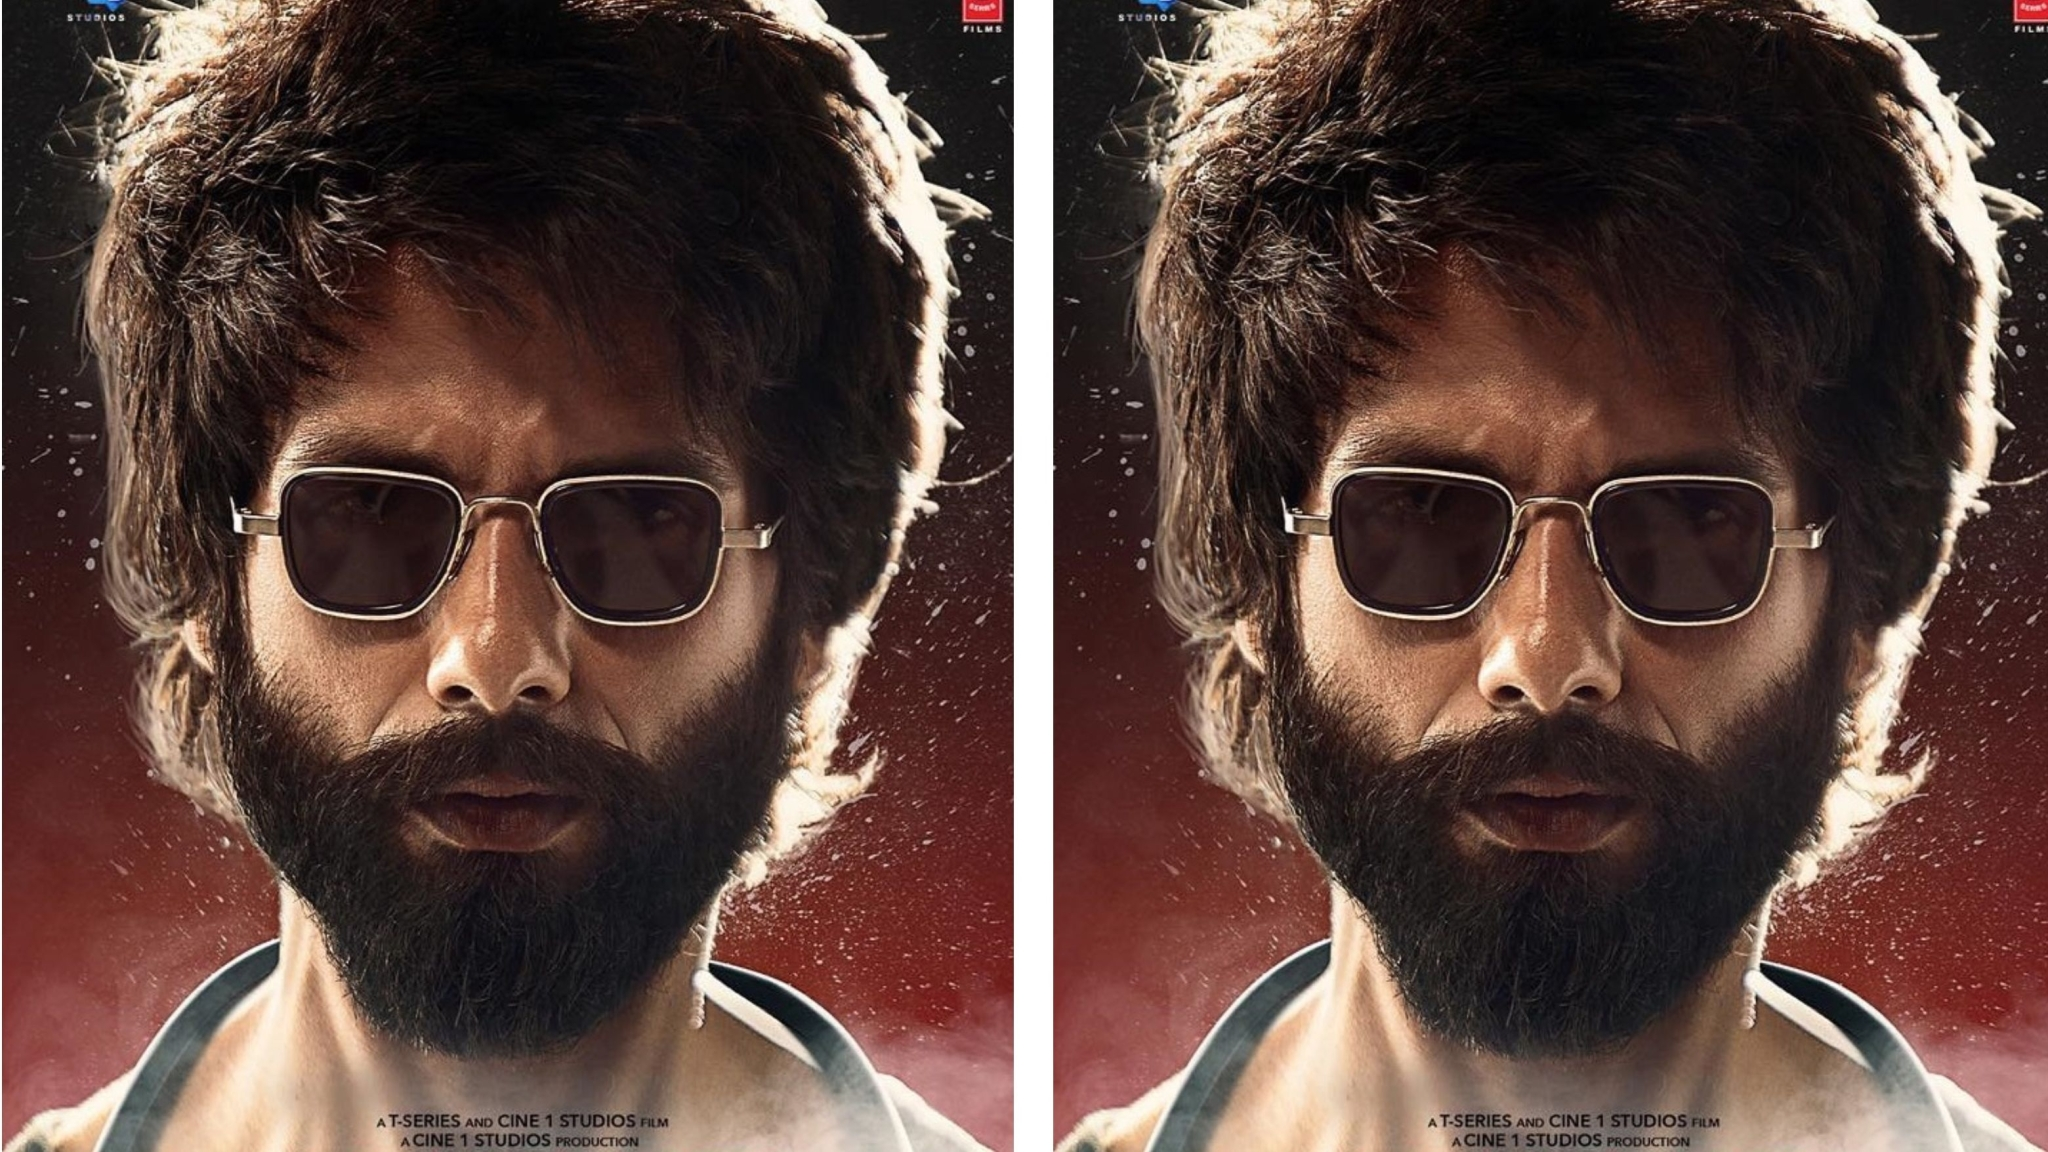 New Hindi Movei 2018 2019 Bolliwood: Entertainment News Today: Shahid Kapoor's Kabir Singh New